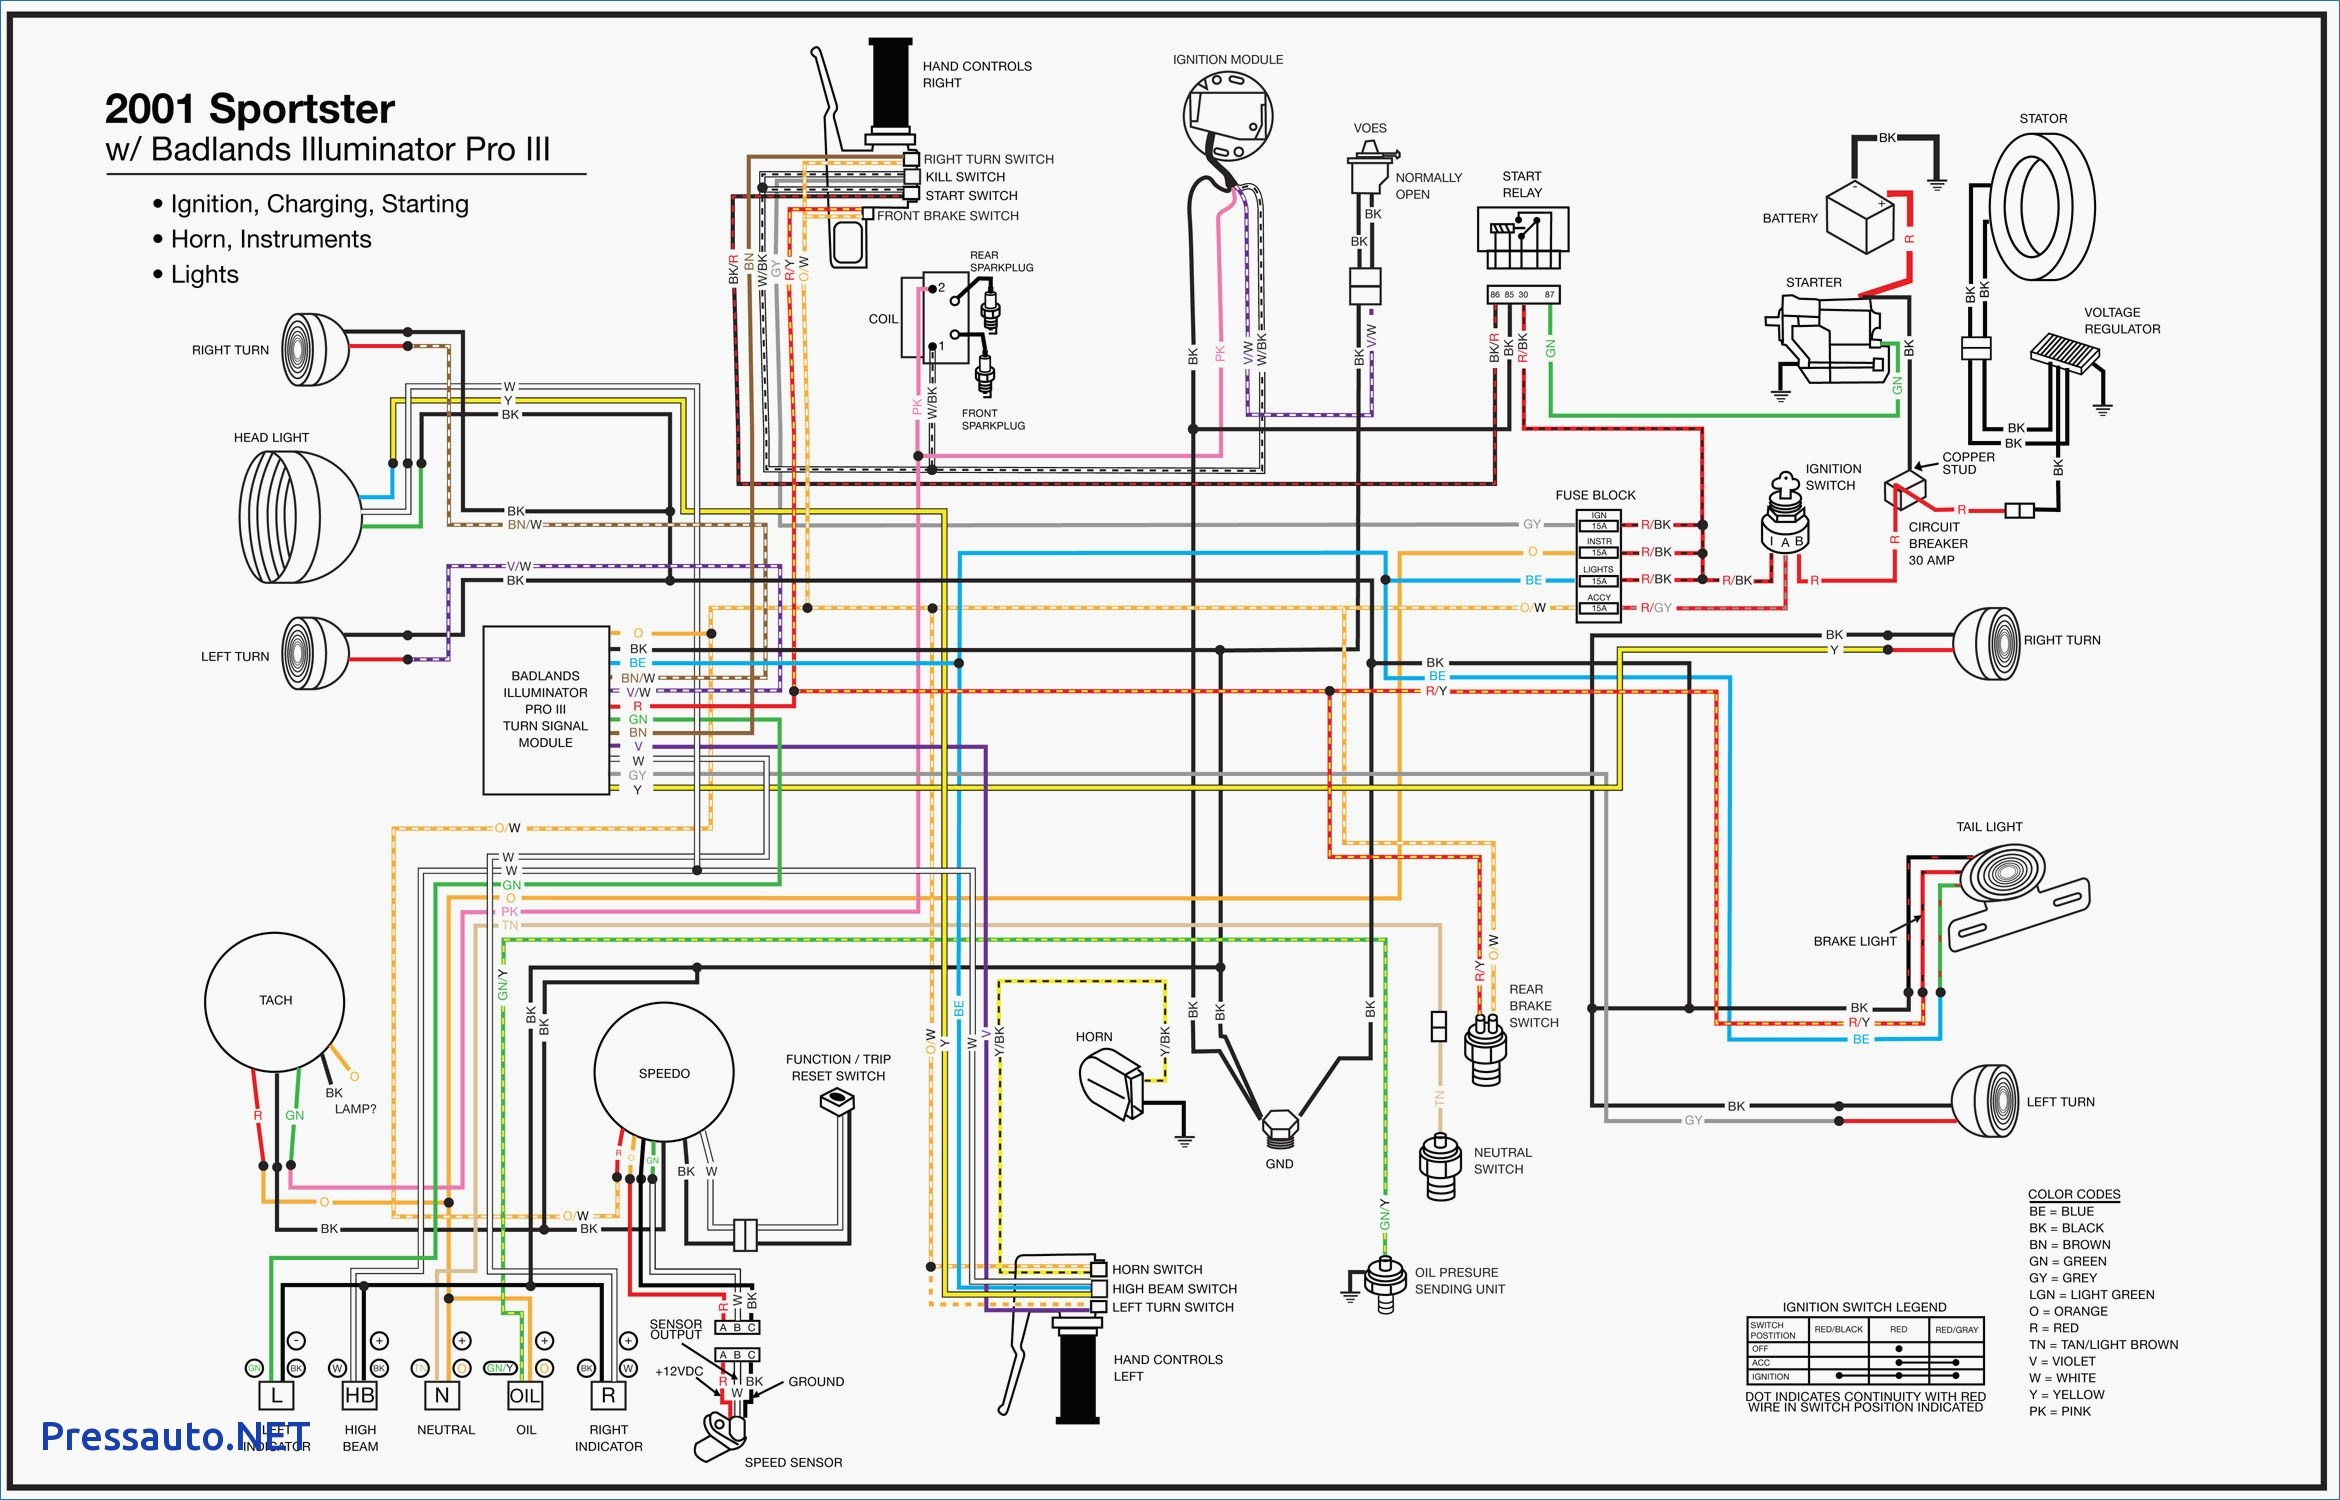 Bmw E46 323I Fog Light Wiring Diagram from www.combles-isolation.fr